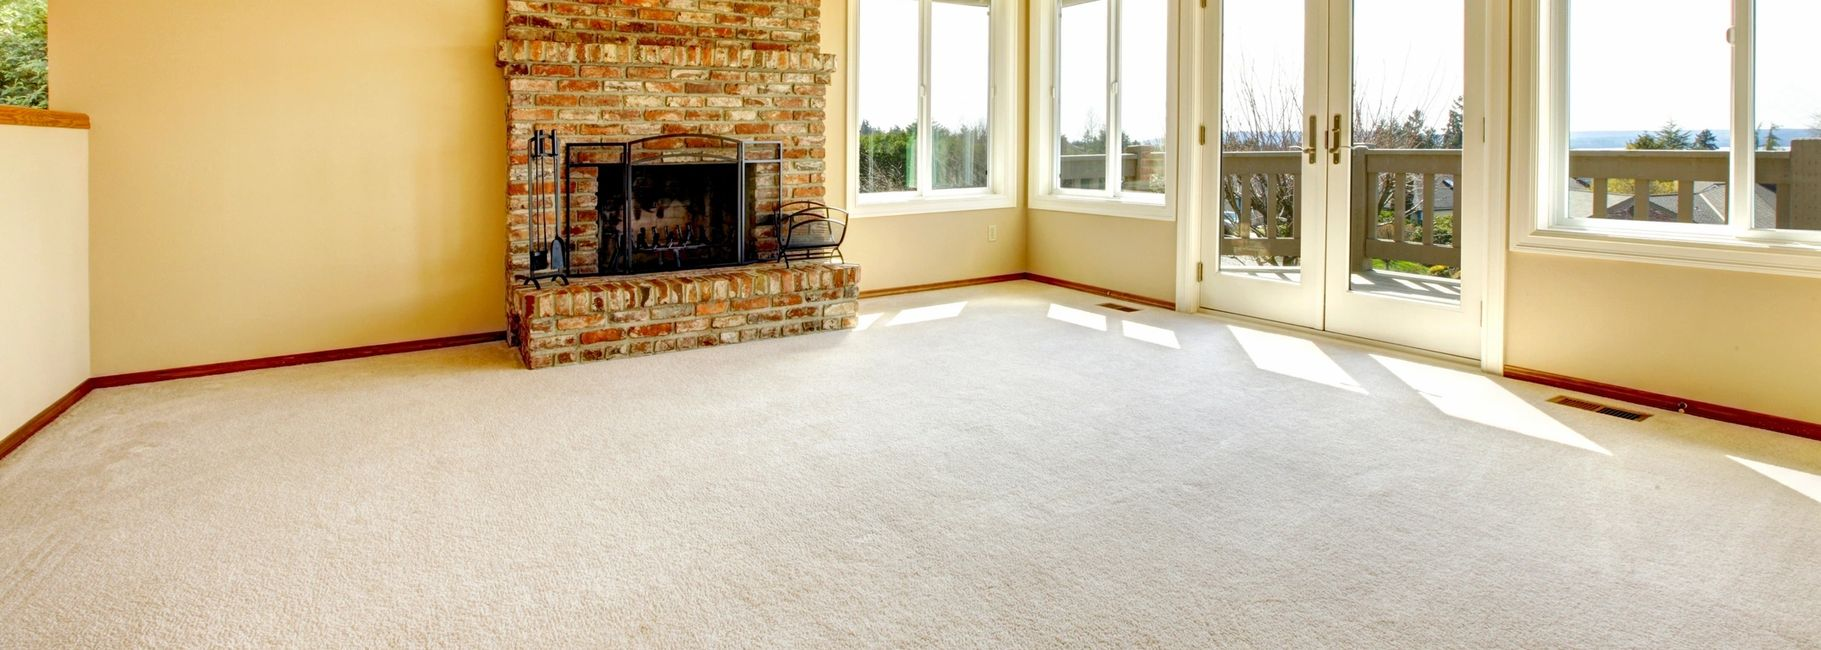 Carpet Cleaning Miami, Aomega Cleaning, Cleaning Services